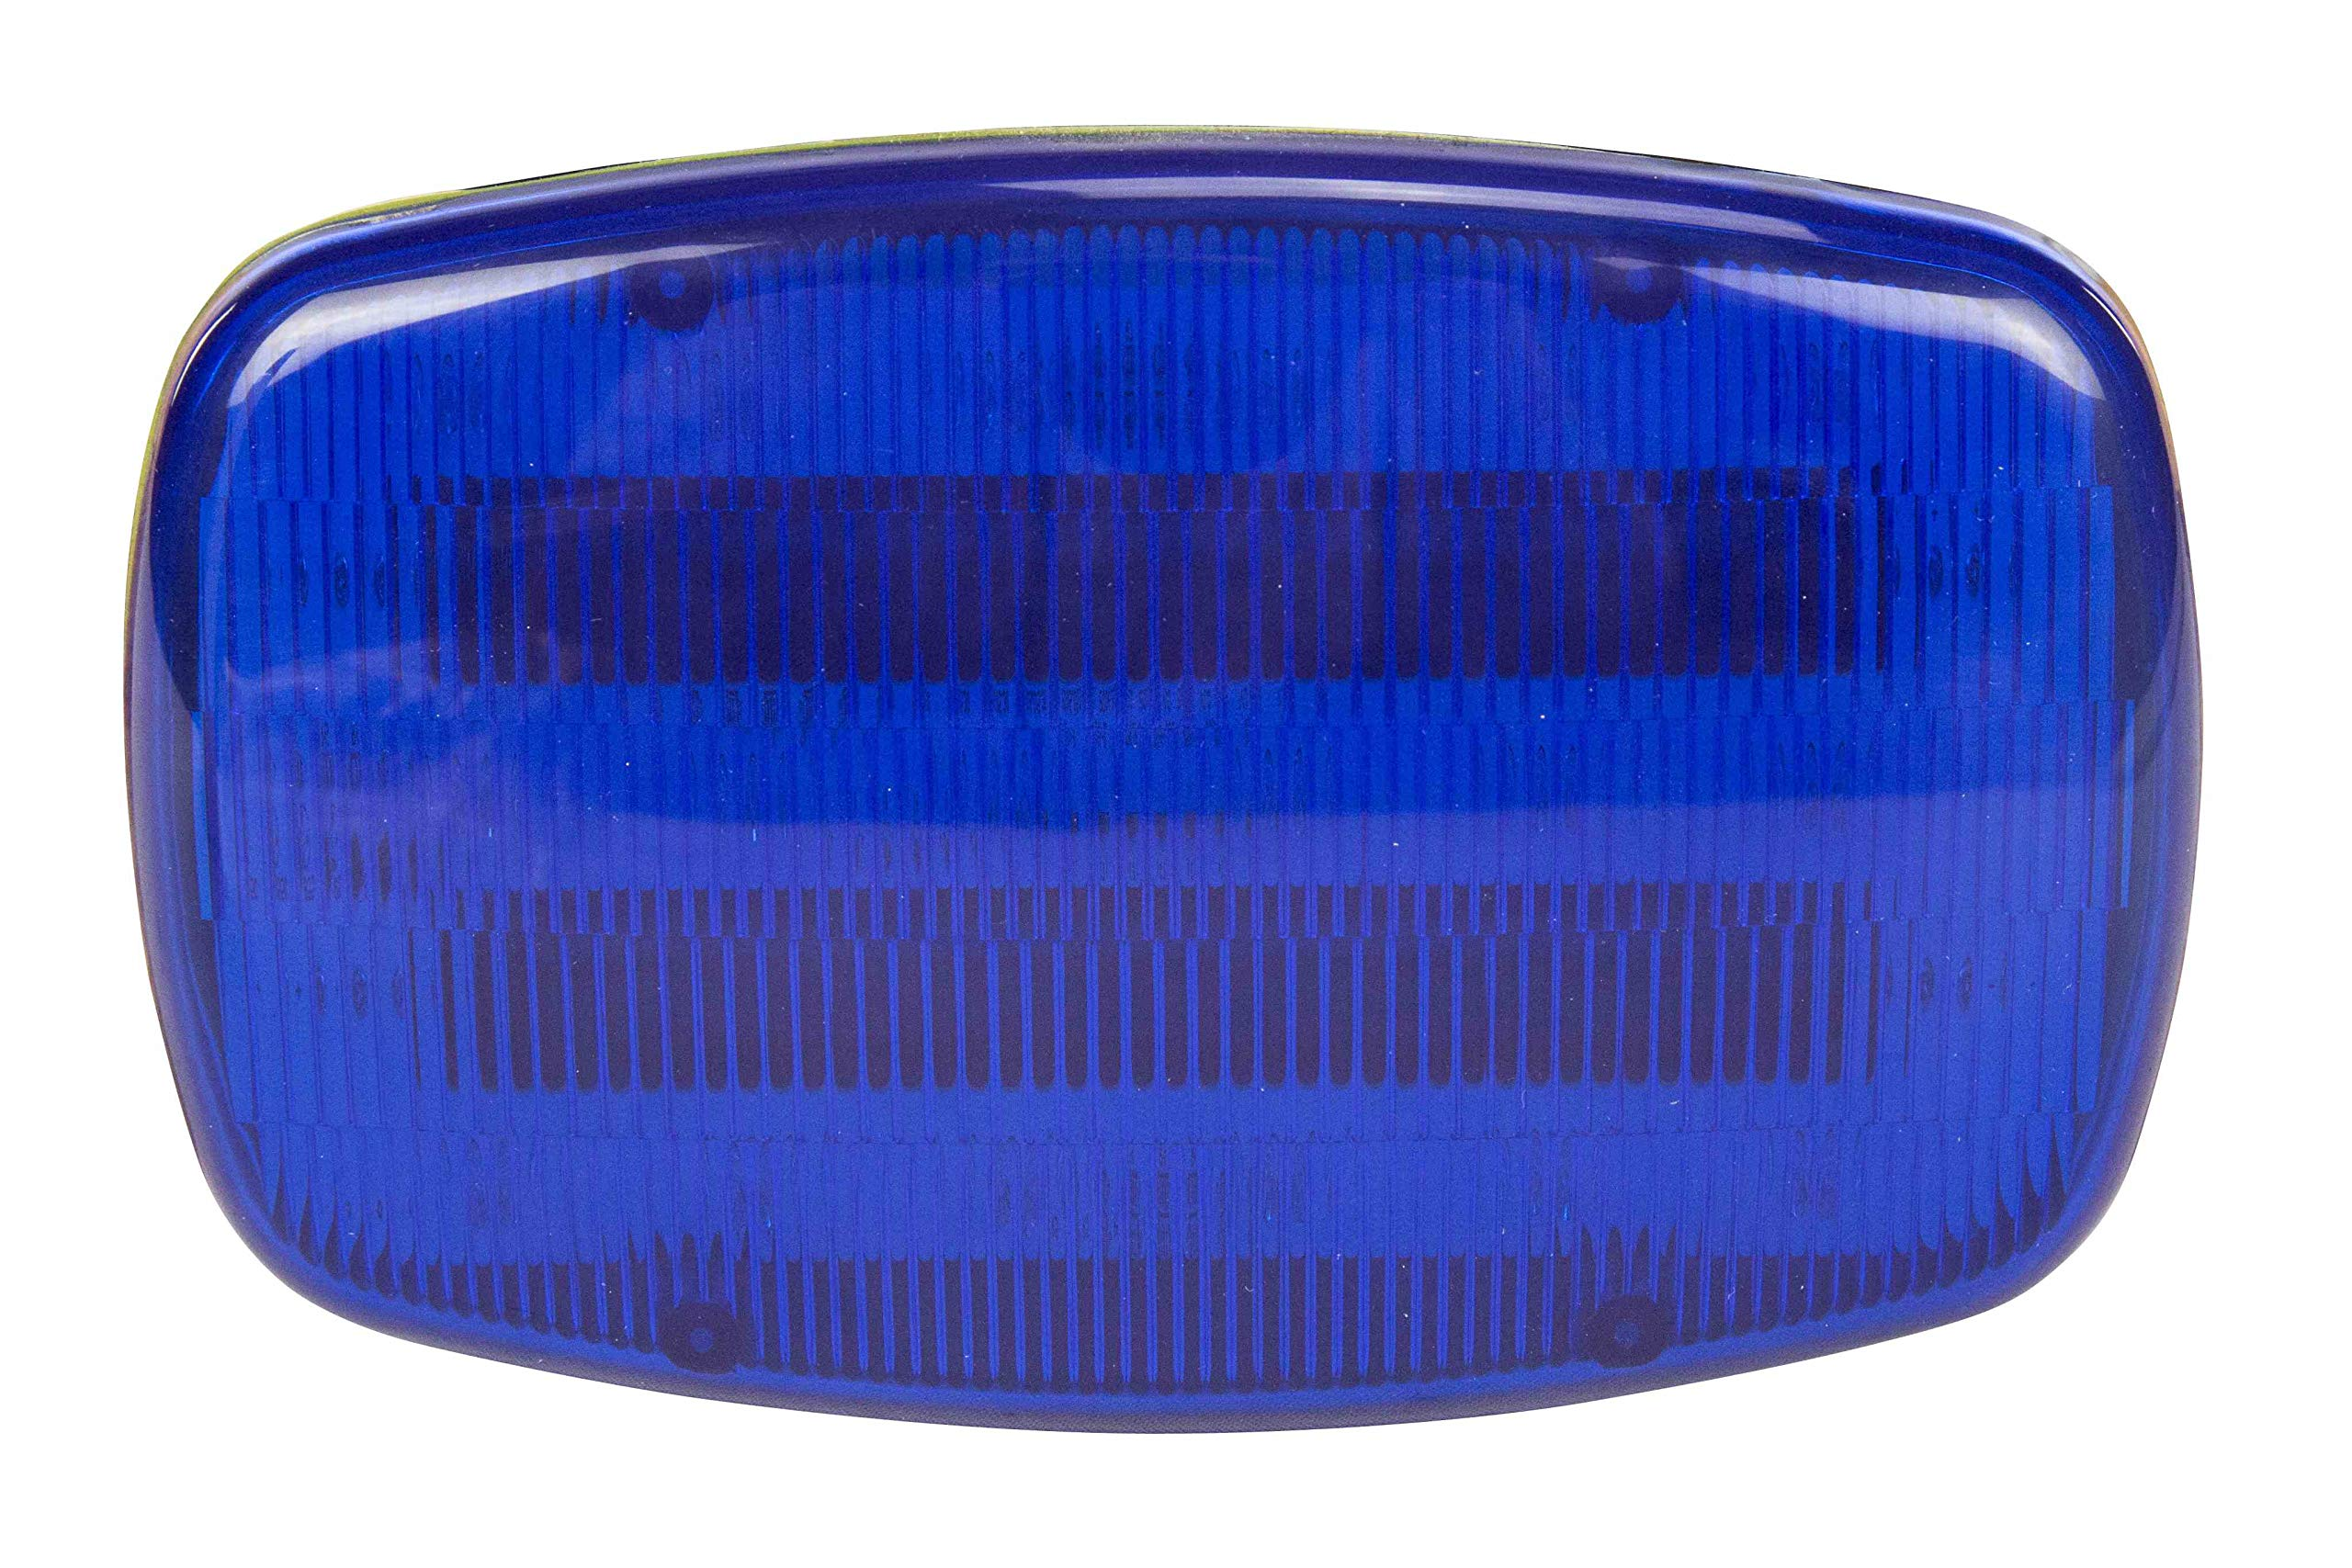 LED Blue Strobe Light - 18 LEDS - Battery Powered - Dual Magnet Base - Continuous or Strobe Output